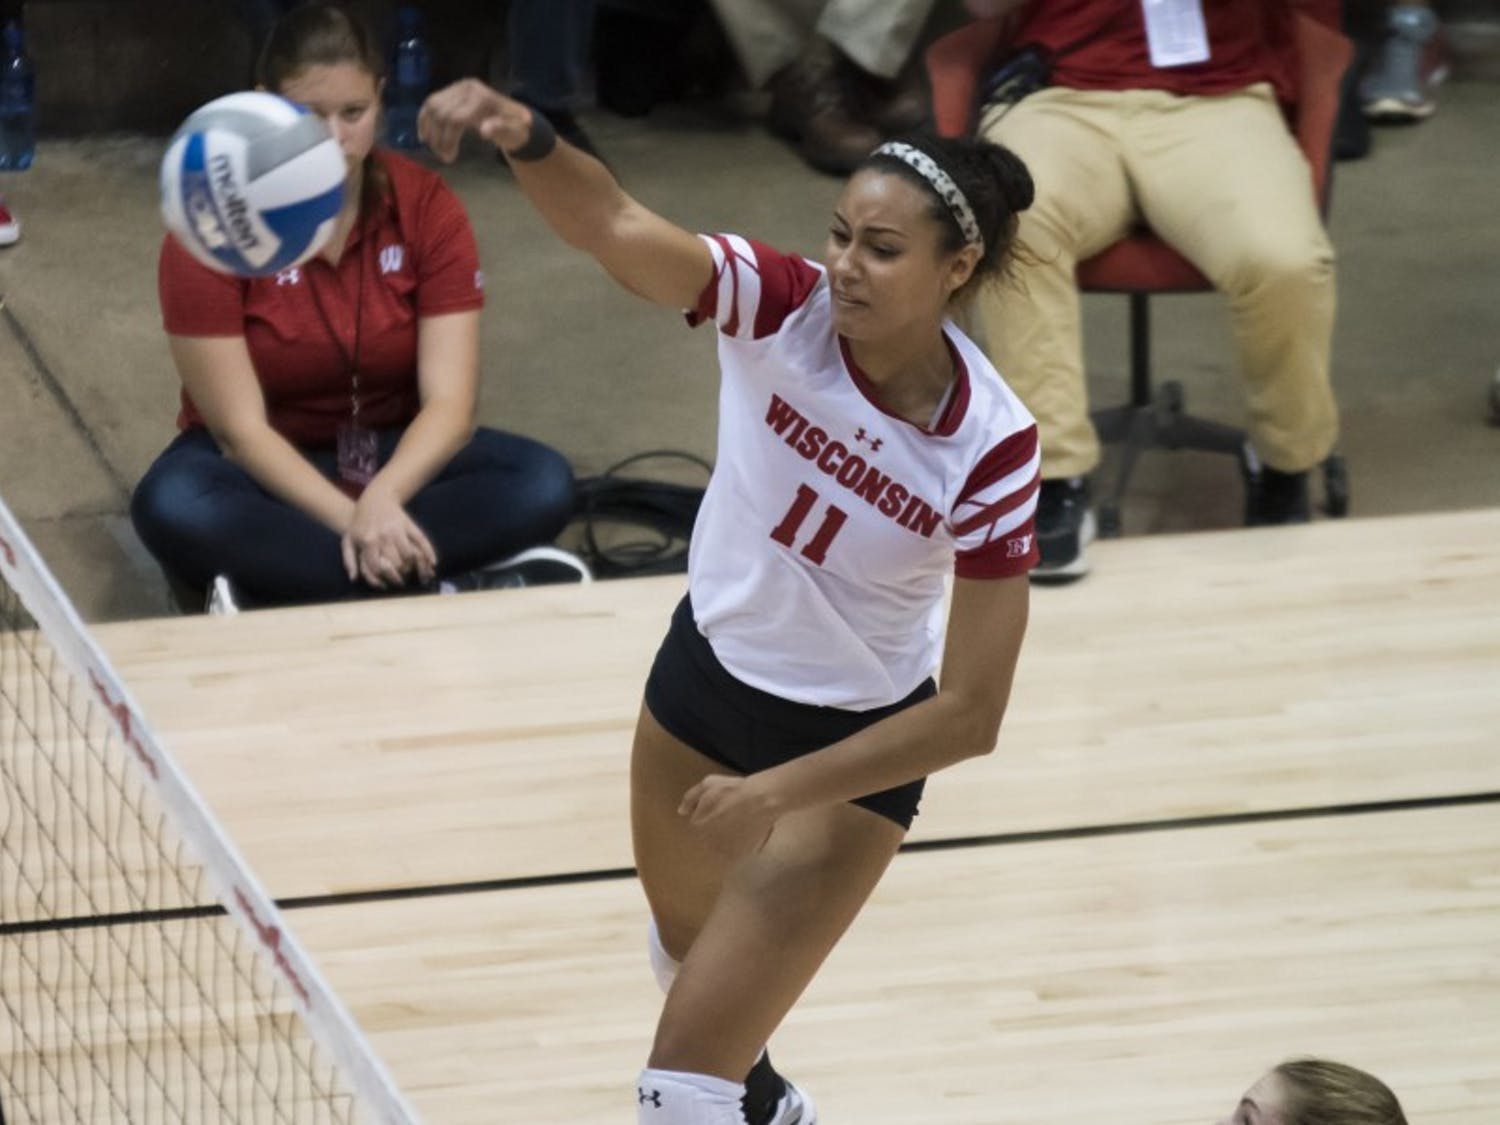 Senior middle blocker Tionna Williams hit .636 percent with seven kills as the Badgers swept the Green Bay Phoenix to advanced to the next round of the NCAA Tournament.